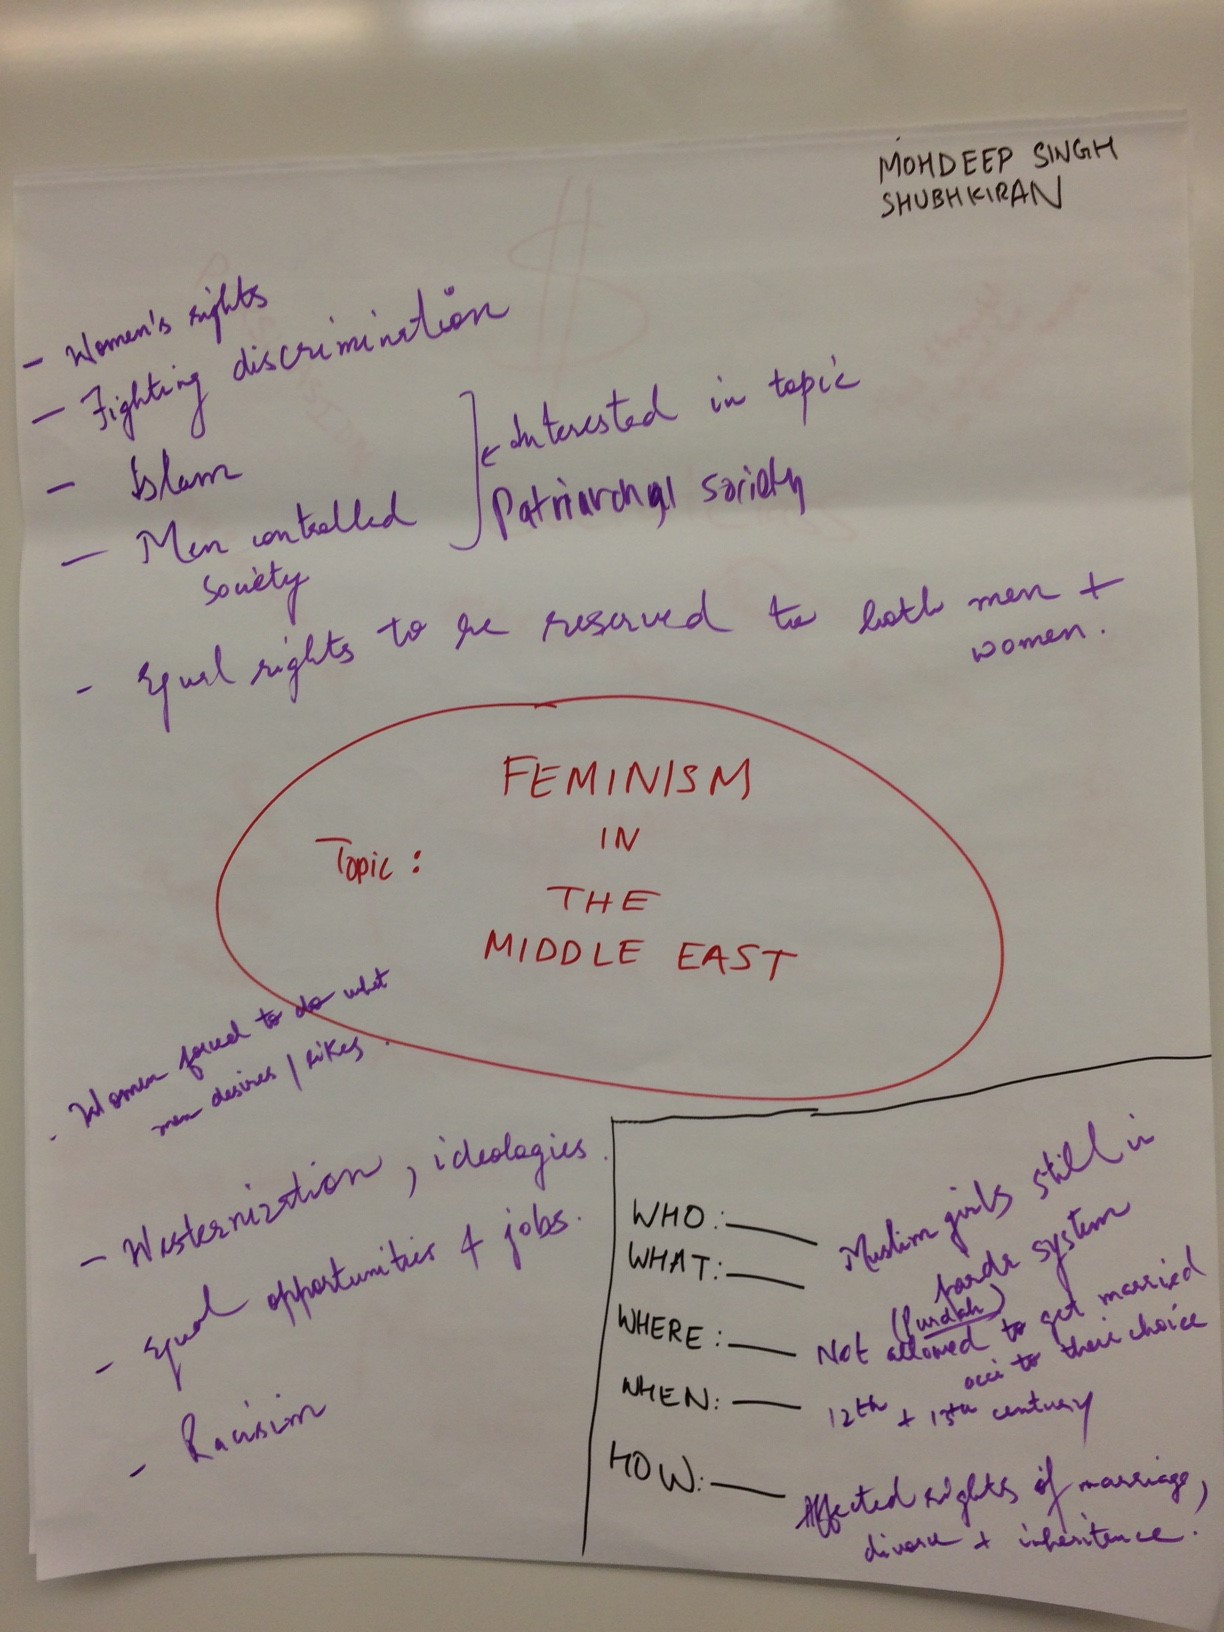 Student Concept Map - Feminism in the Middle East